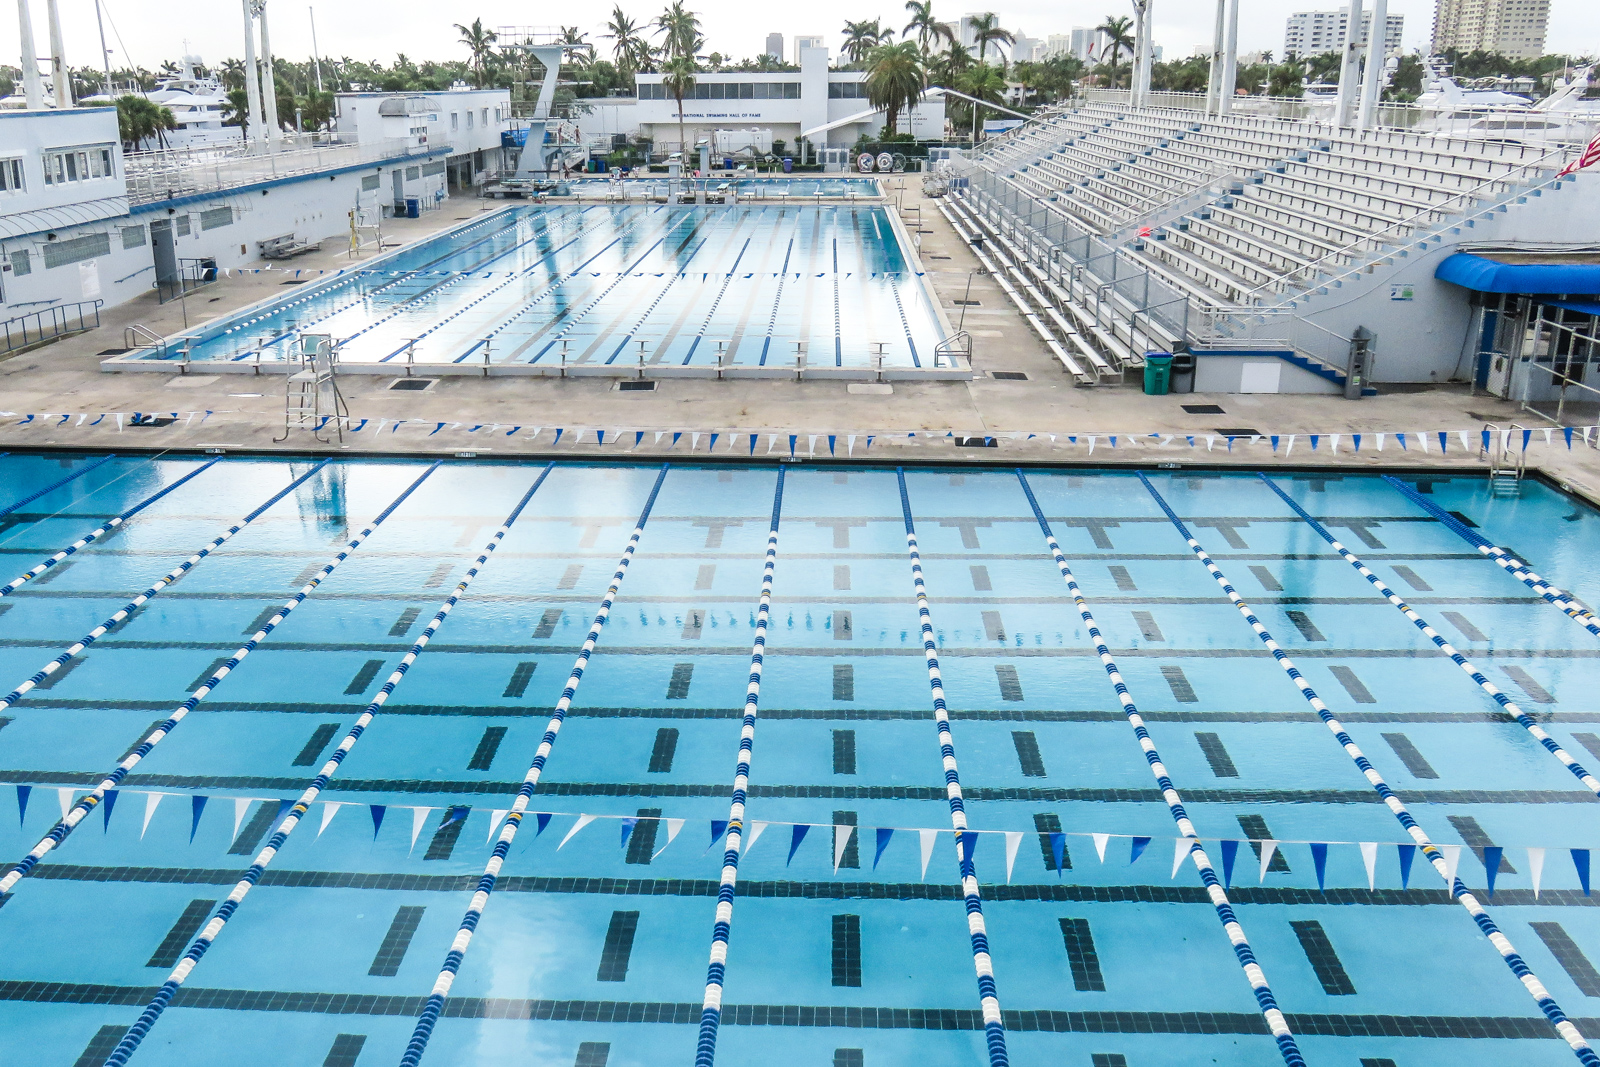 Swimming hall of fame is one of the top things to do in Fort Lauderdale